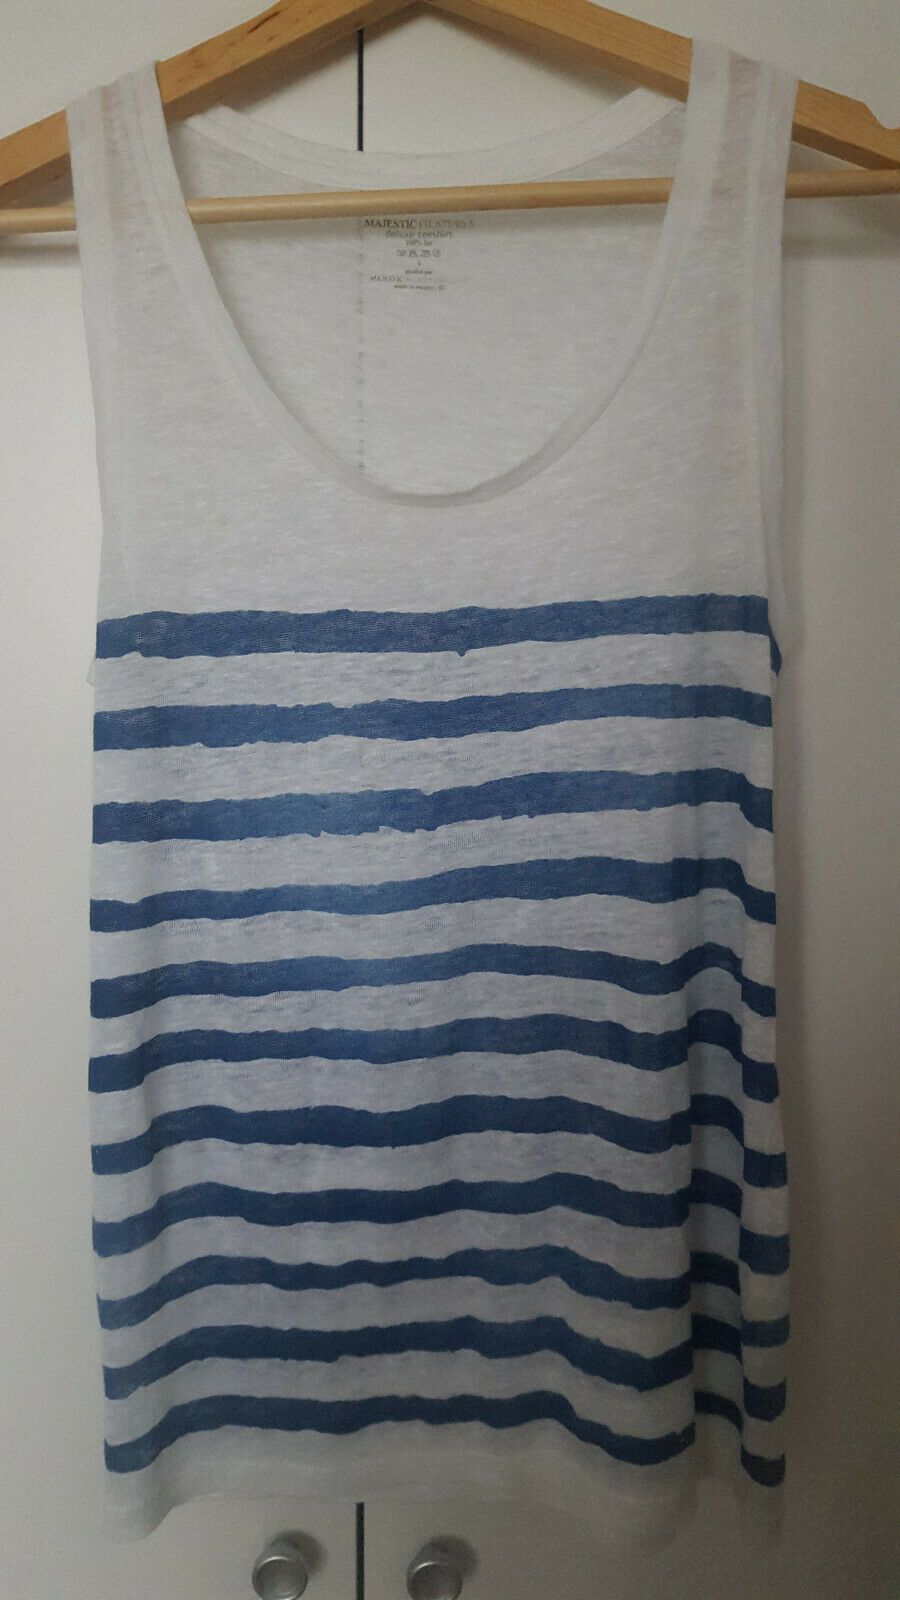 a93fc60cac9db3 Majestic Filatures White and Blue Striped Fine-knit Linen Top - Size ...